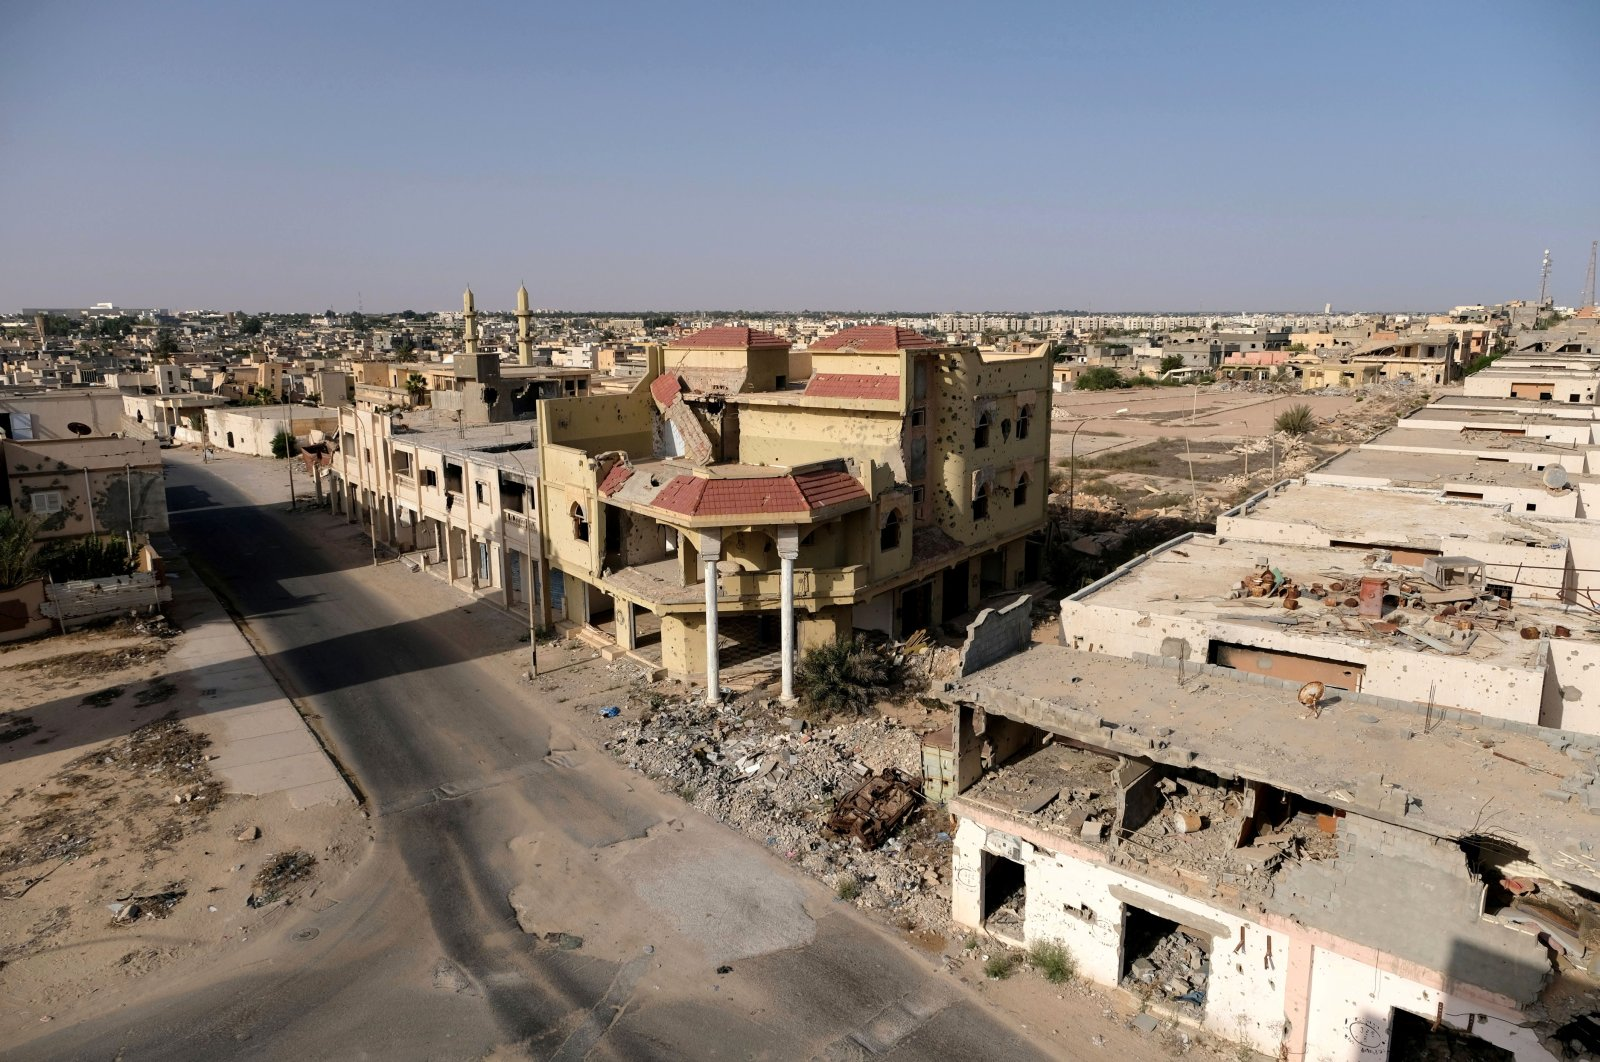 Buildings destroyed during past clashes remain part of the scenery in Sirte, Libya, Aug. 18, 2020. (REUTERS Photo)